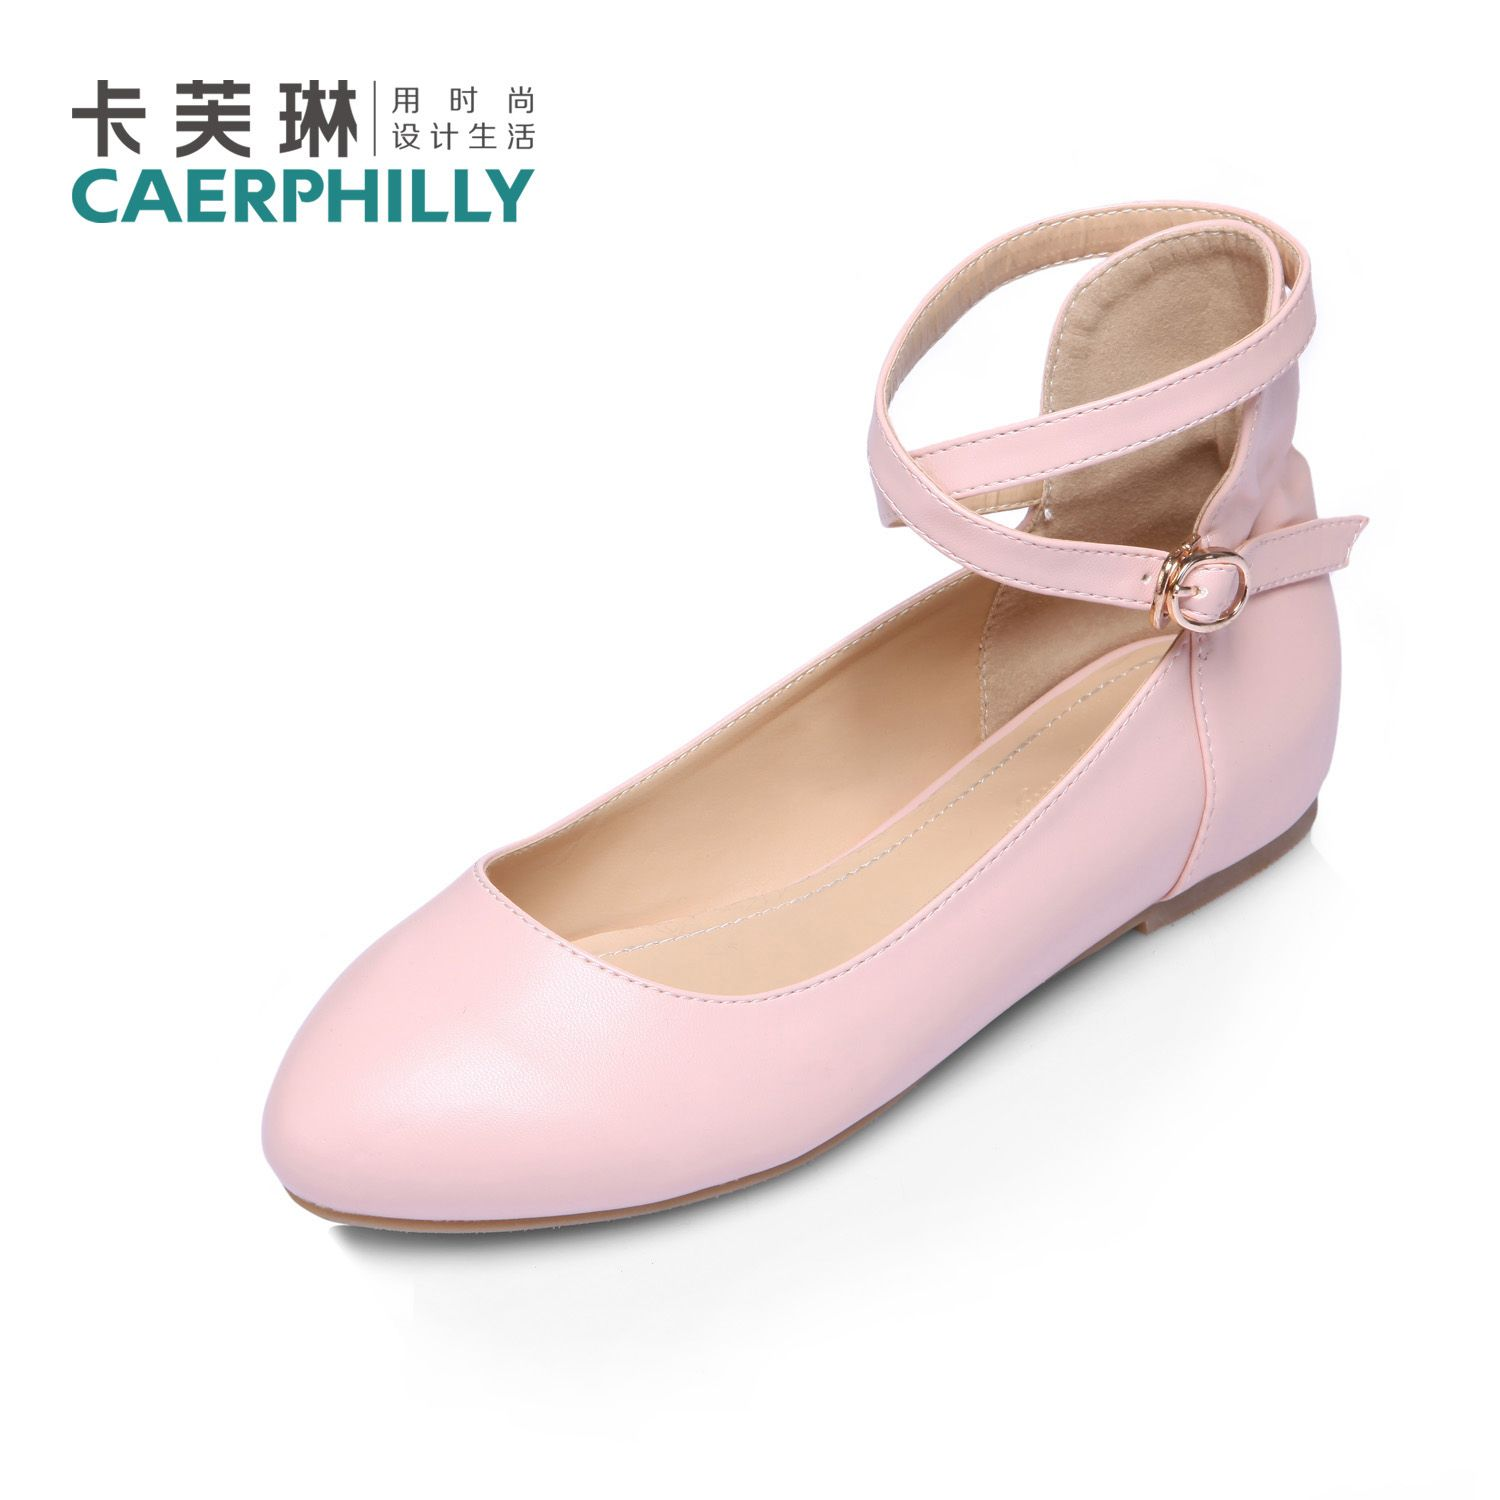 http://ccrrents.com/ka-fulin-2013-spring-new-round-flat-shoes-with-a-single-wild-girls-with-flat-shoes-cl320104-p-9805.html